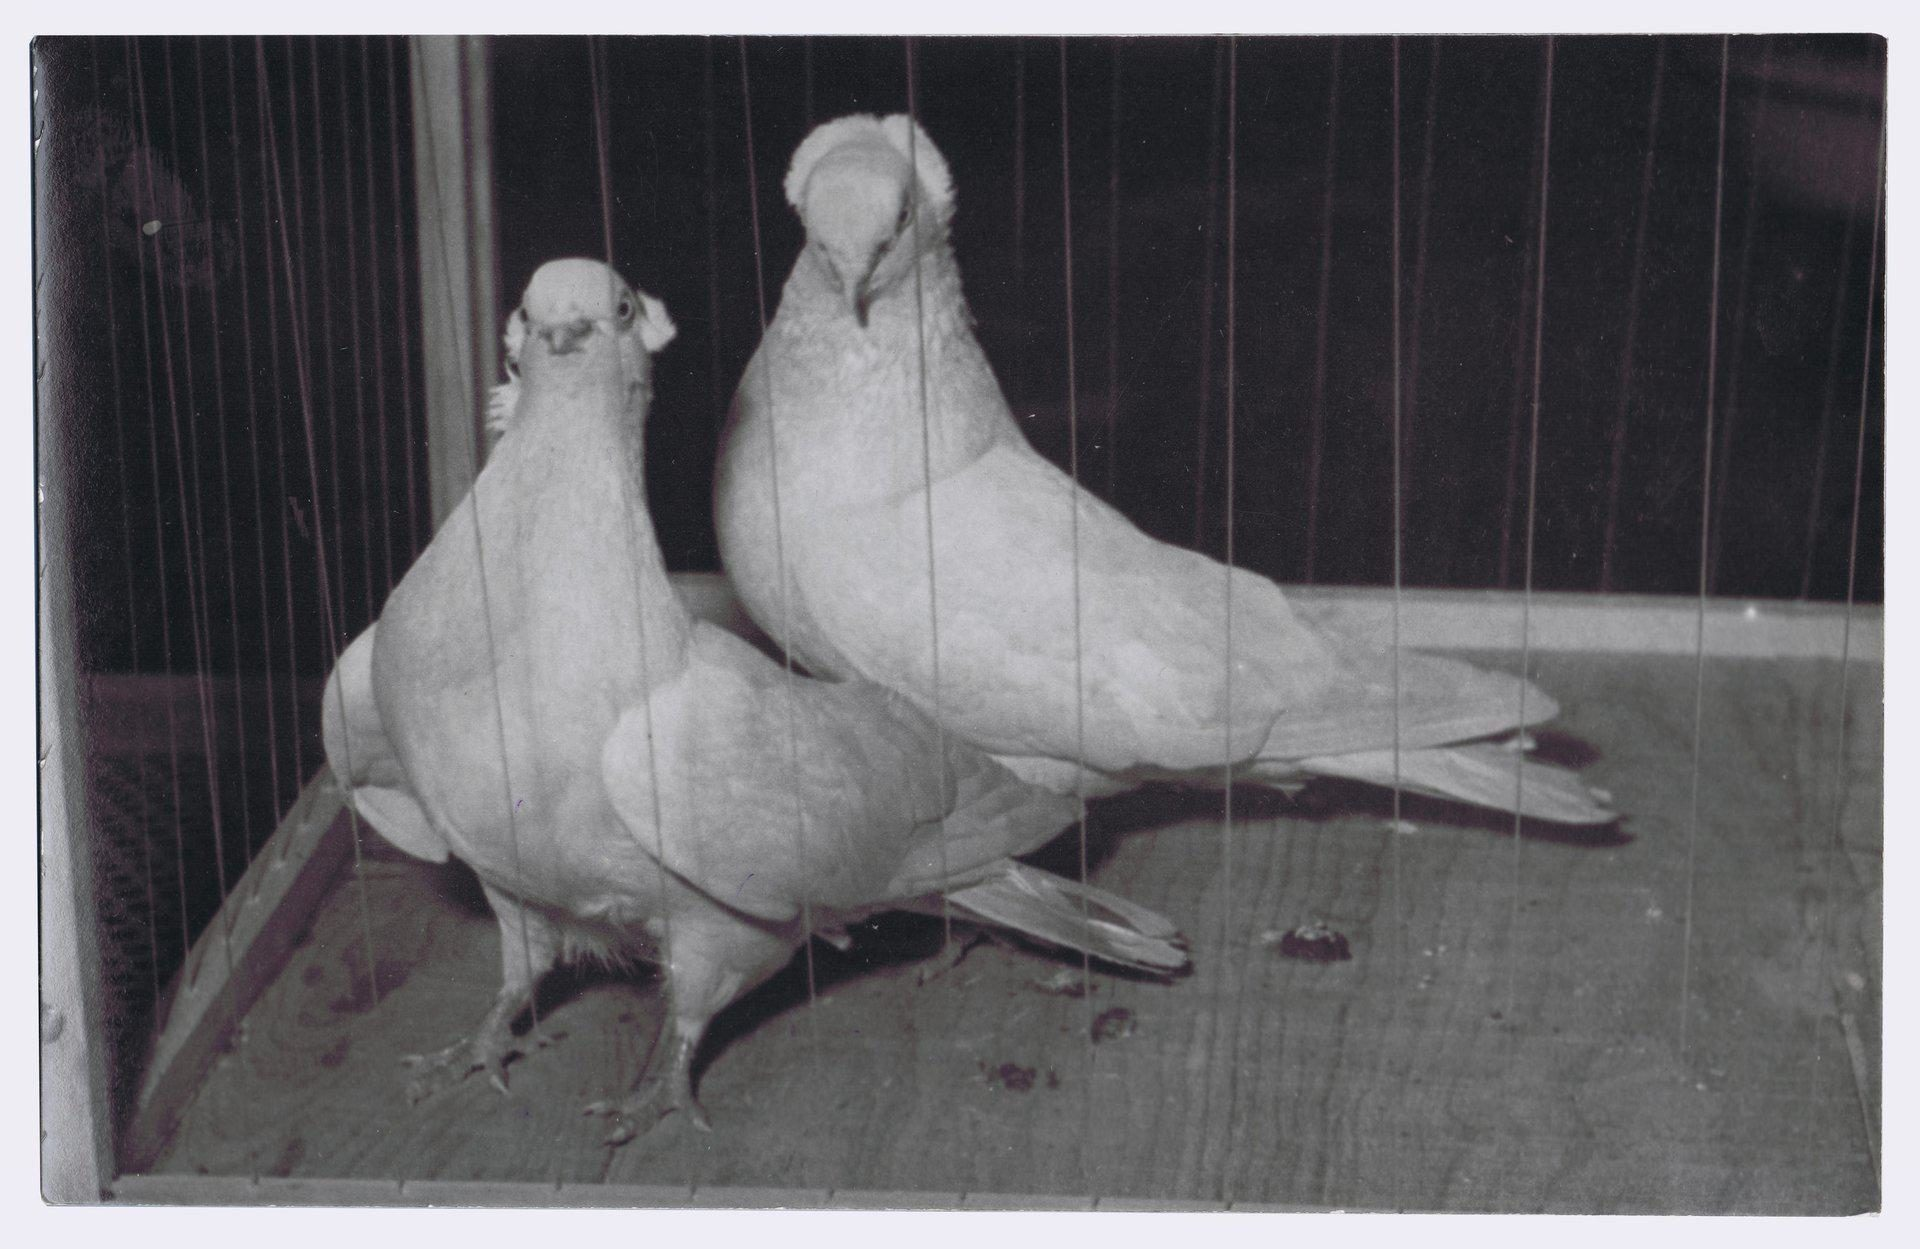 Petra Feriancová, Series Creator – From the Archive of O. Ferianc, New Breeds 1949-1952, 2008, (2/112)